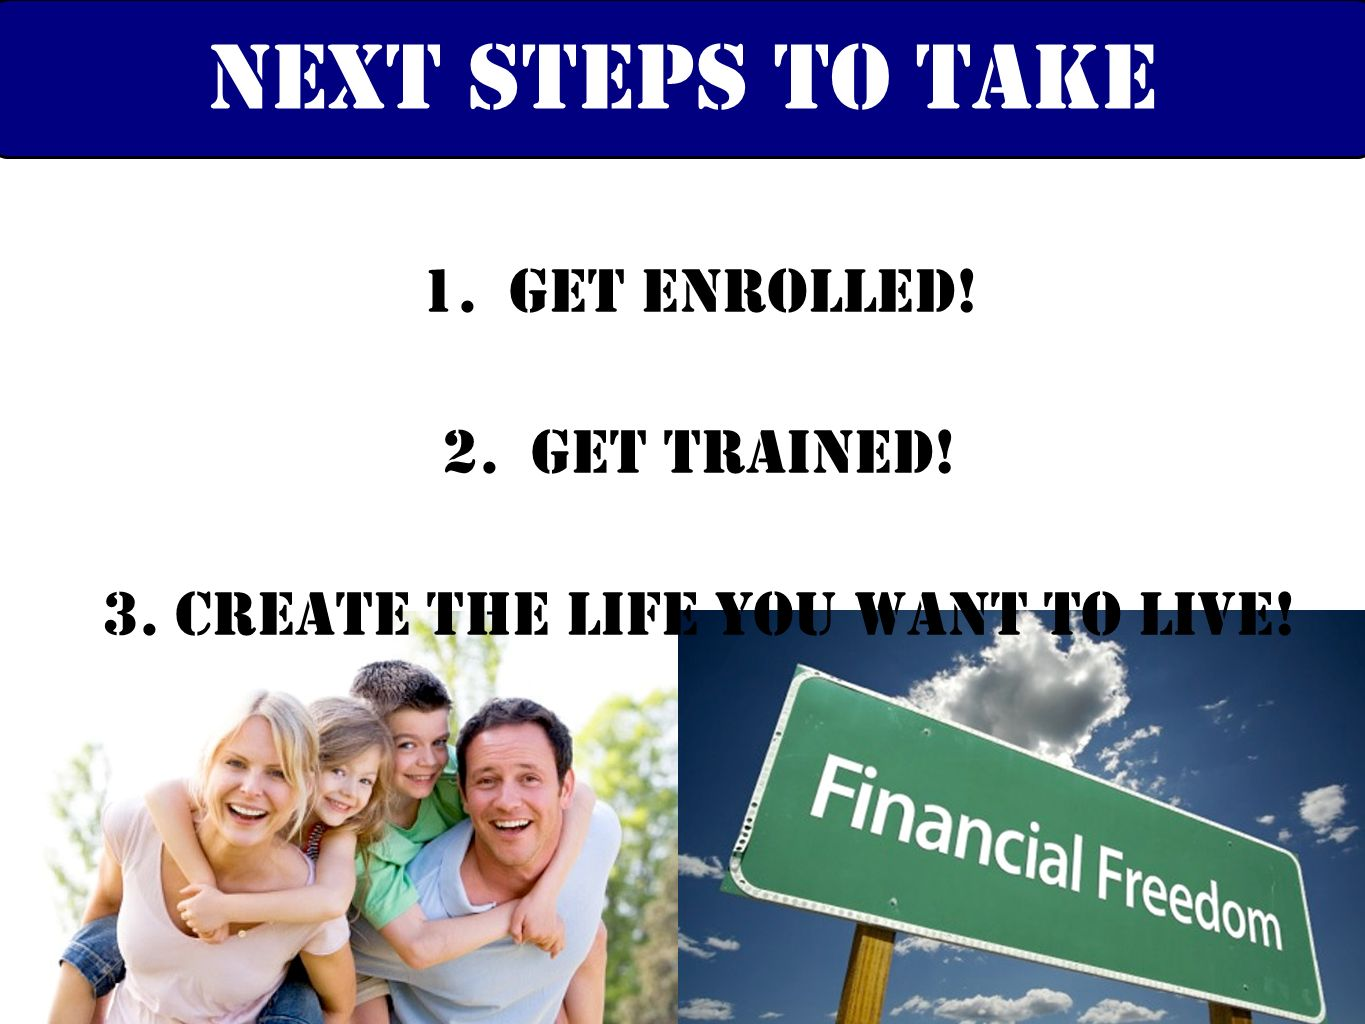 1. Get Enrolled! 2. Get Trained! 3. Create the life you want to live! Next steps to take